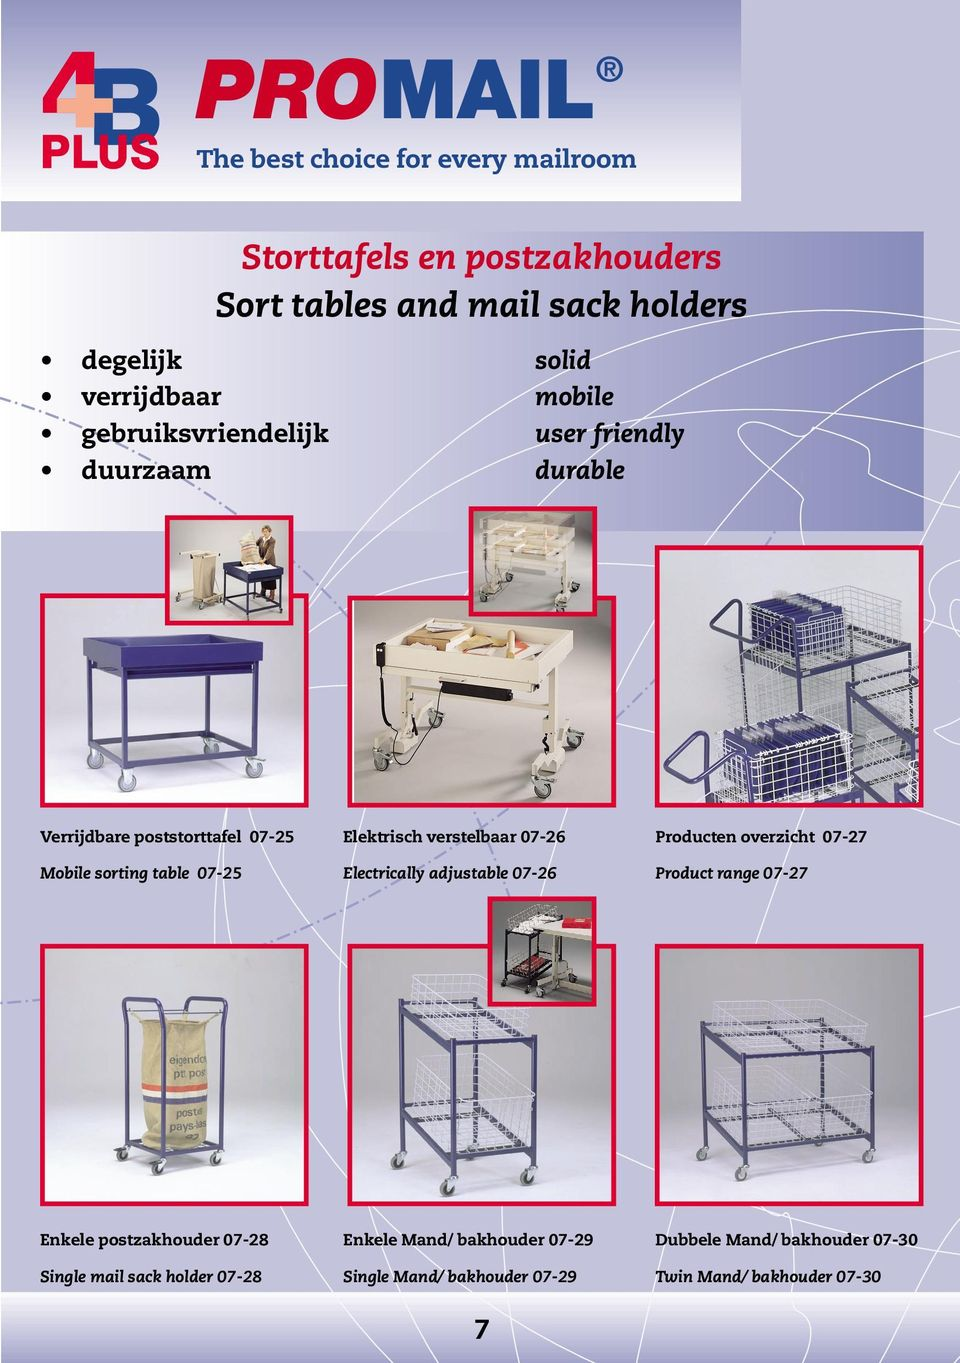 Mobile sorting table 07-25 Electrically adjustable 07-26 Product range 07-27 Enkele postzakhouder 07-28 Enkele Mand/